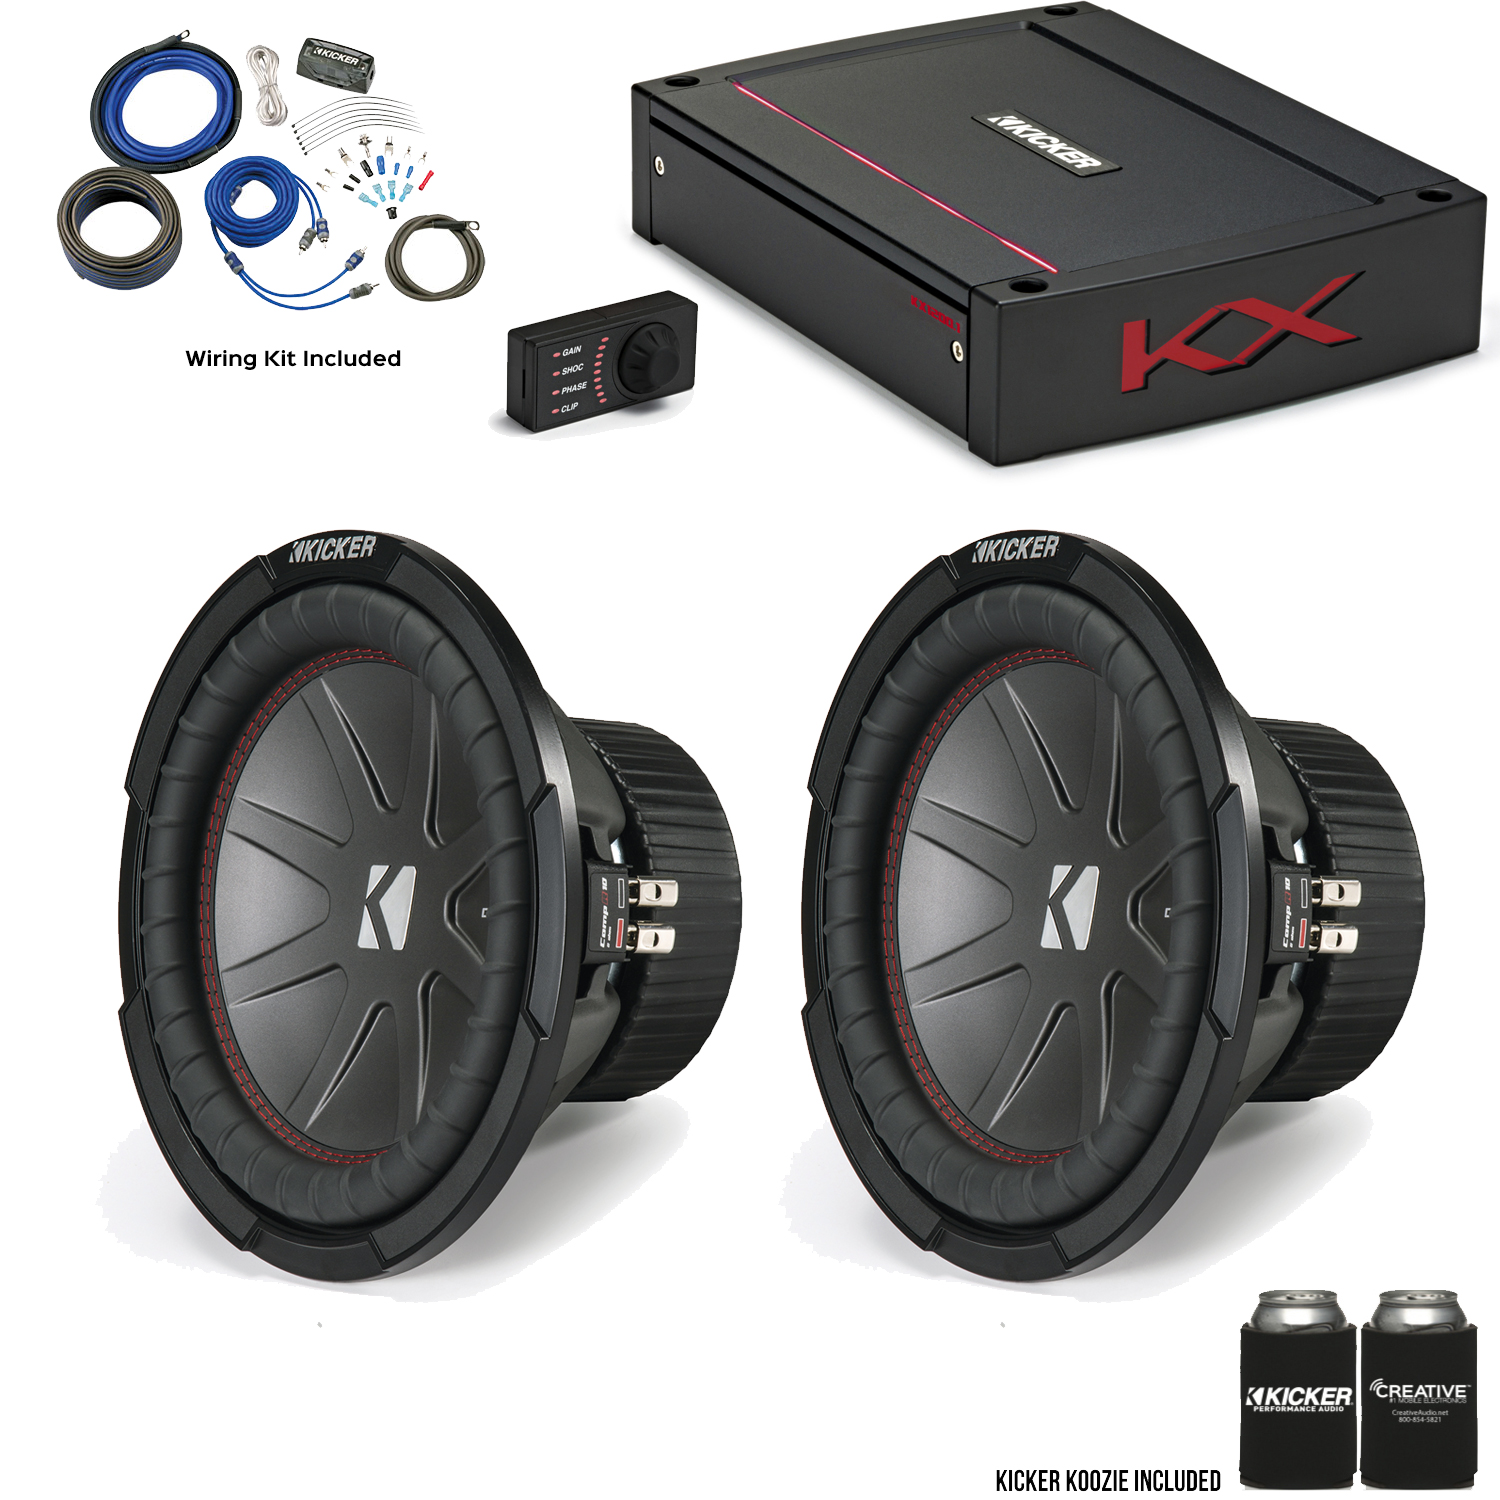 Kicker 43cwr102 10 Compr Subs With 44kxa12001 Kx Series Amplifier Wiring Kit Gauge For Speakers Subwoofers Automotive And Wire